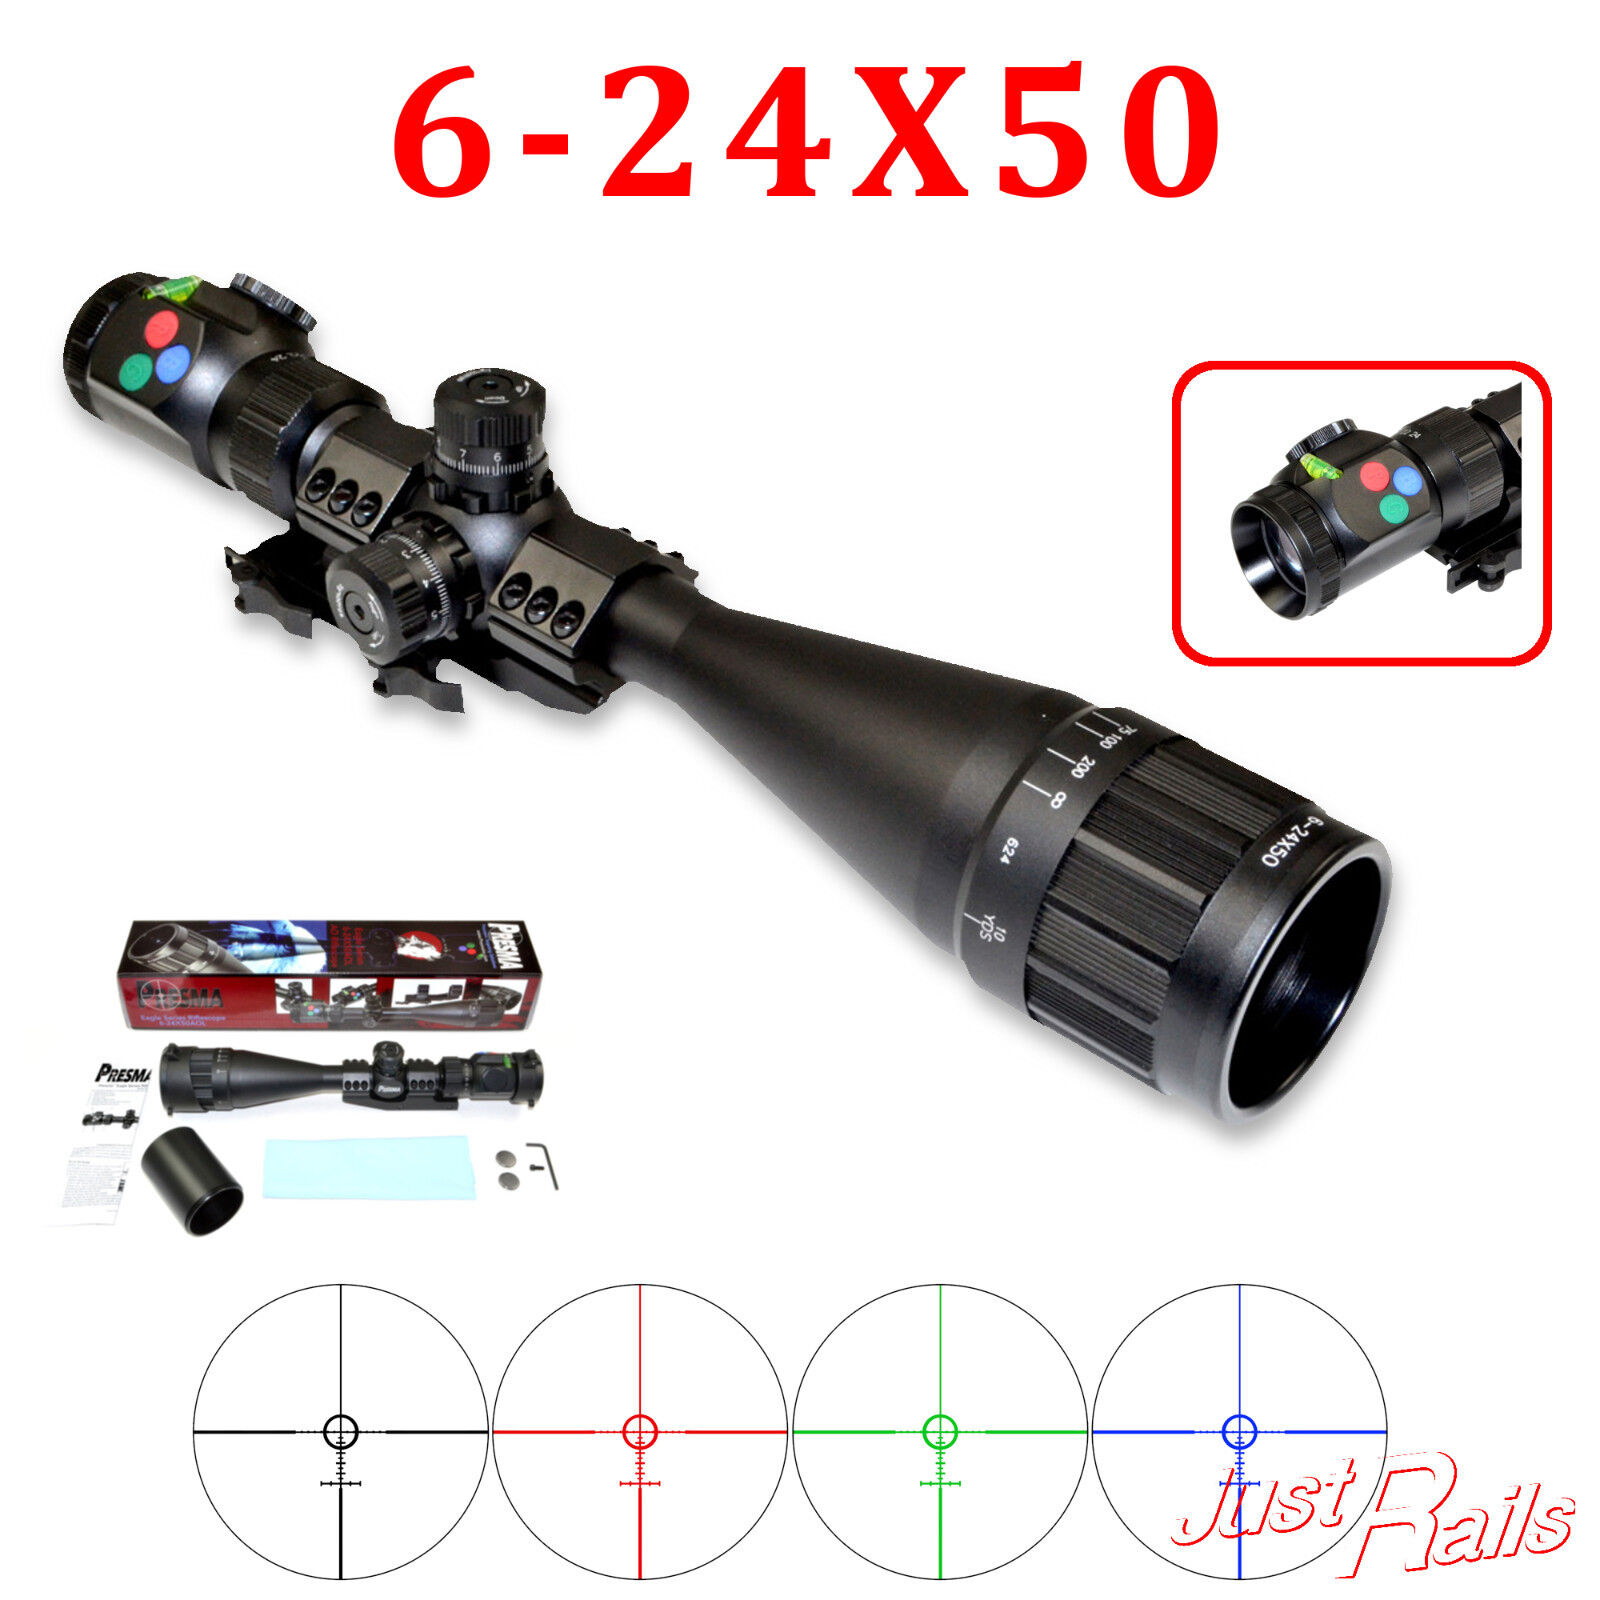 PRESMA Rifle Scope 6-24x50 AOL RGB Tri Illumination RXR Reticle (EX6-24X50AOL)